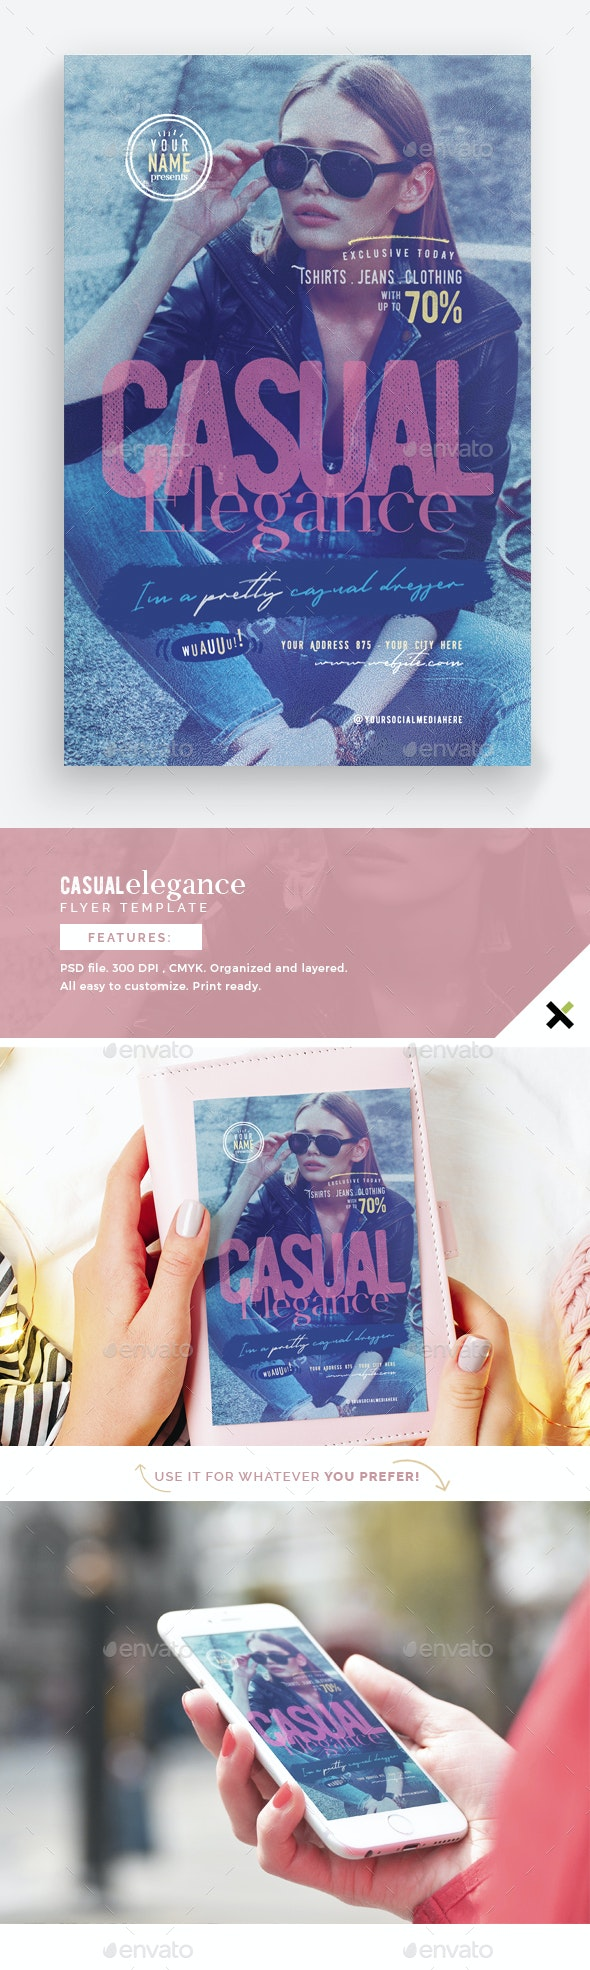 Casual Elegance Flyer Template - Flyers Print Templates